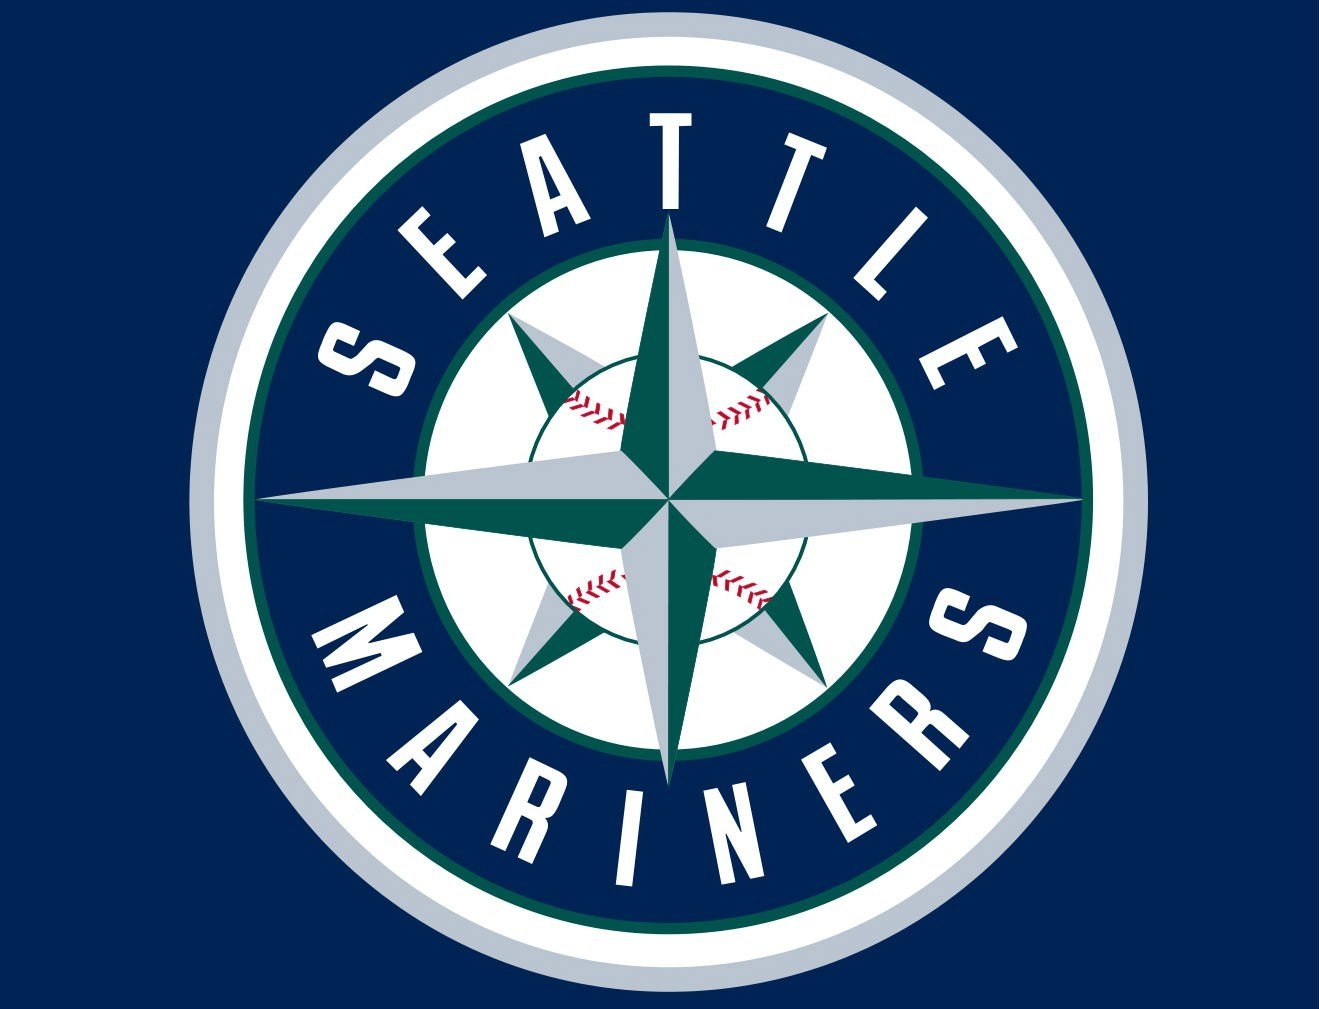 Mariners play Blue Jays again tomorrow at 4:07 p.m.